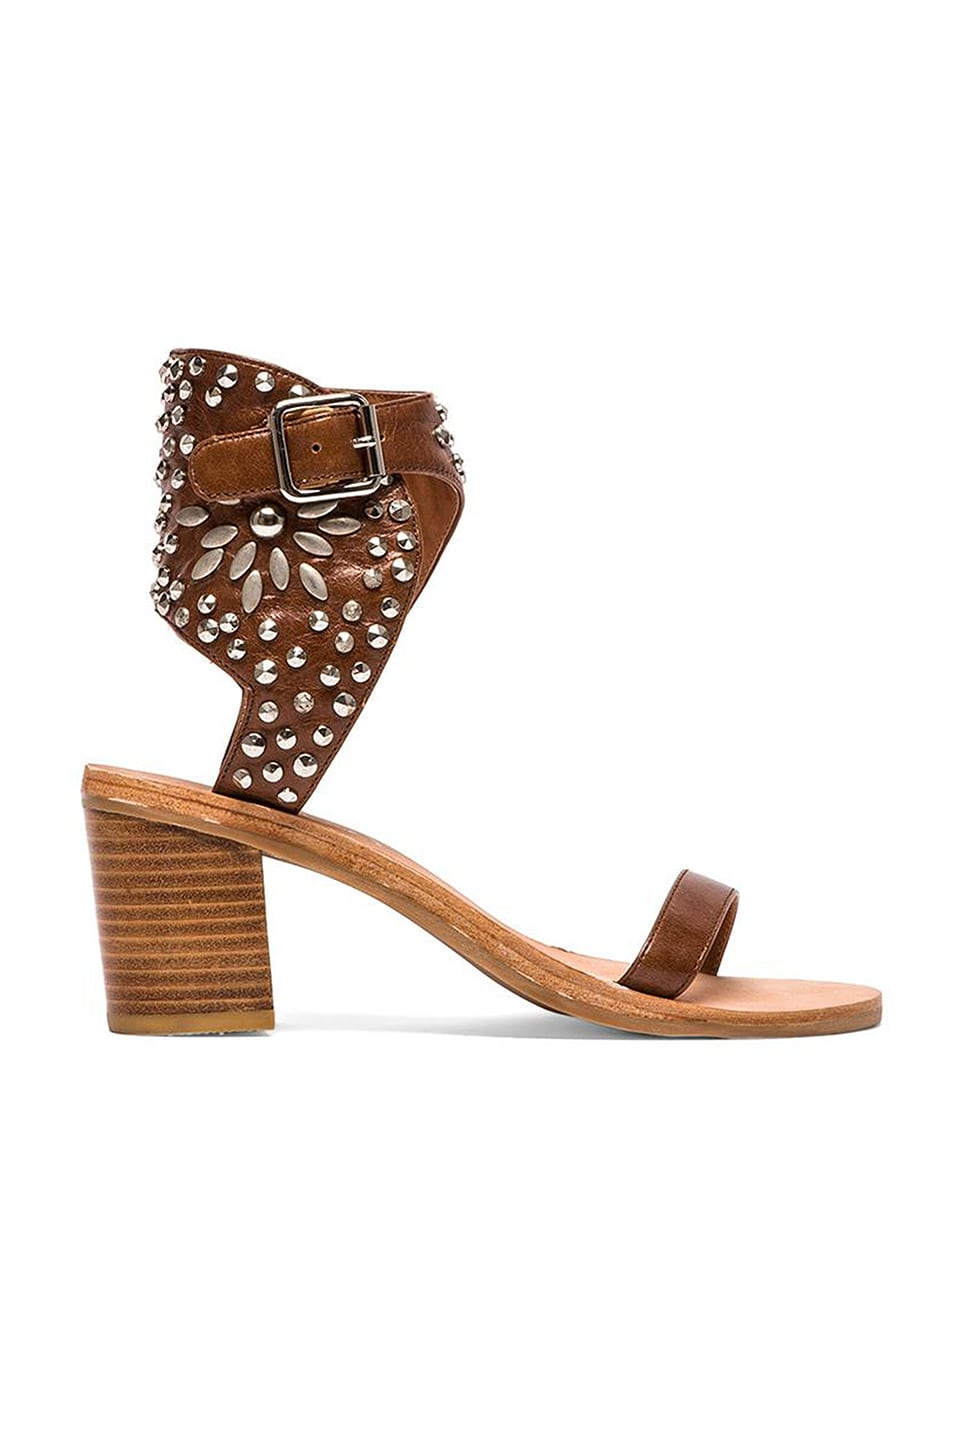 Jeffrey Campbell Des Moines Sandal in Tan & Silver